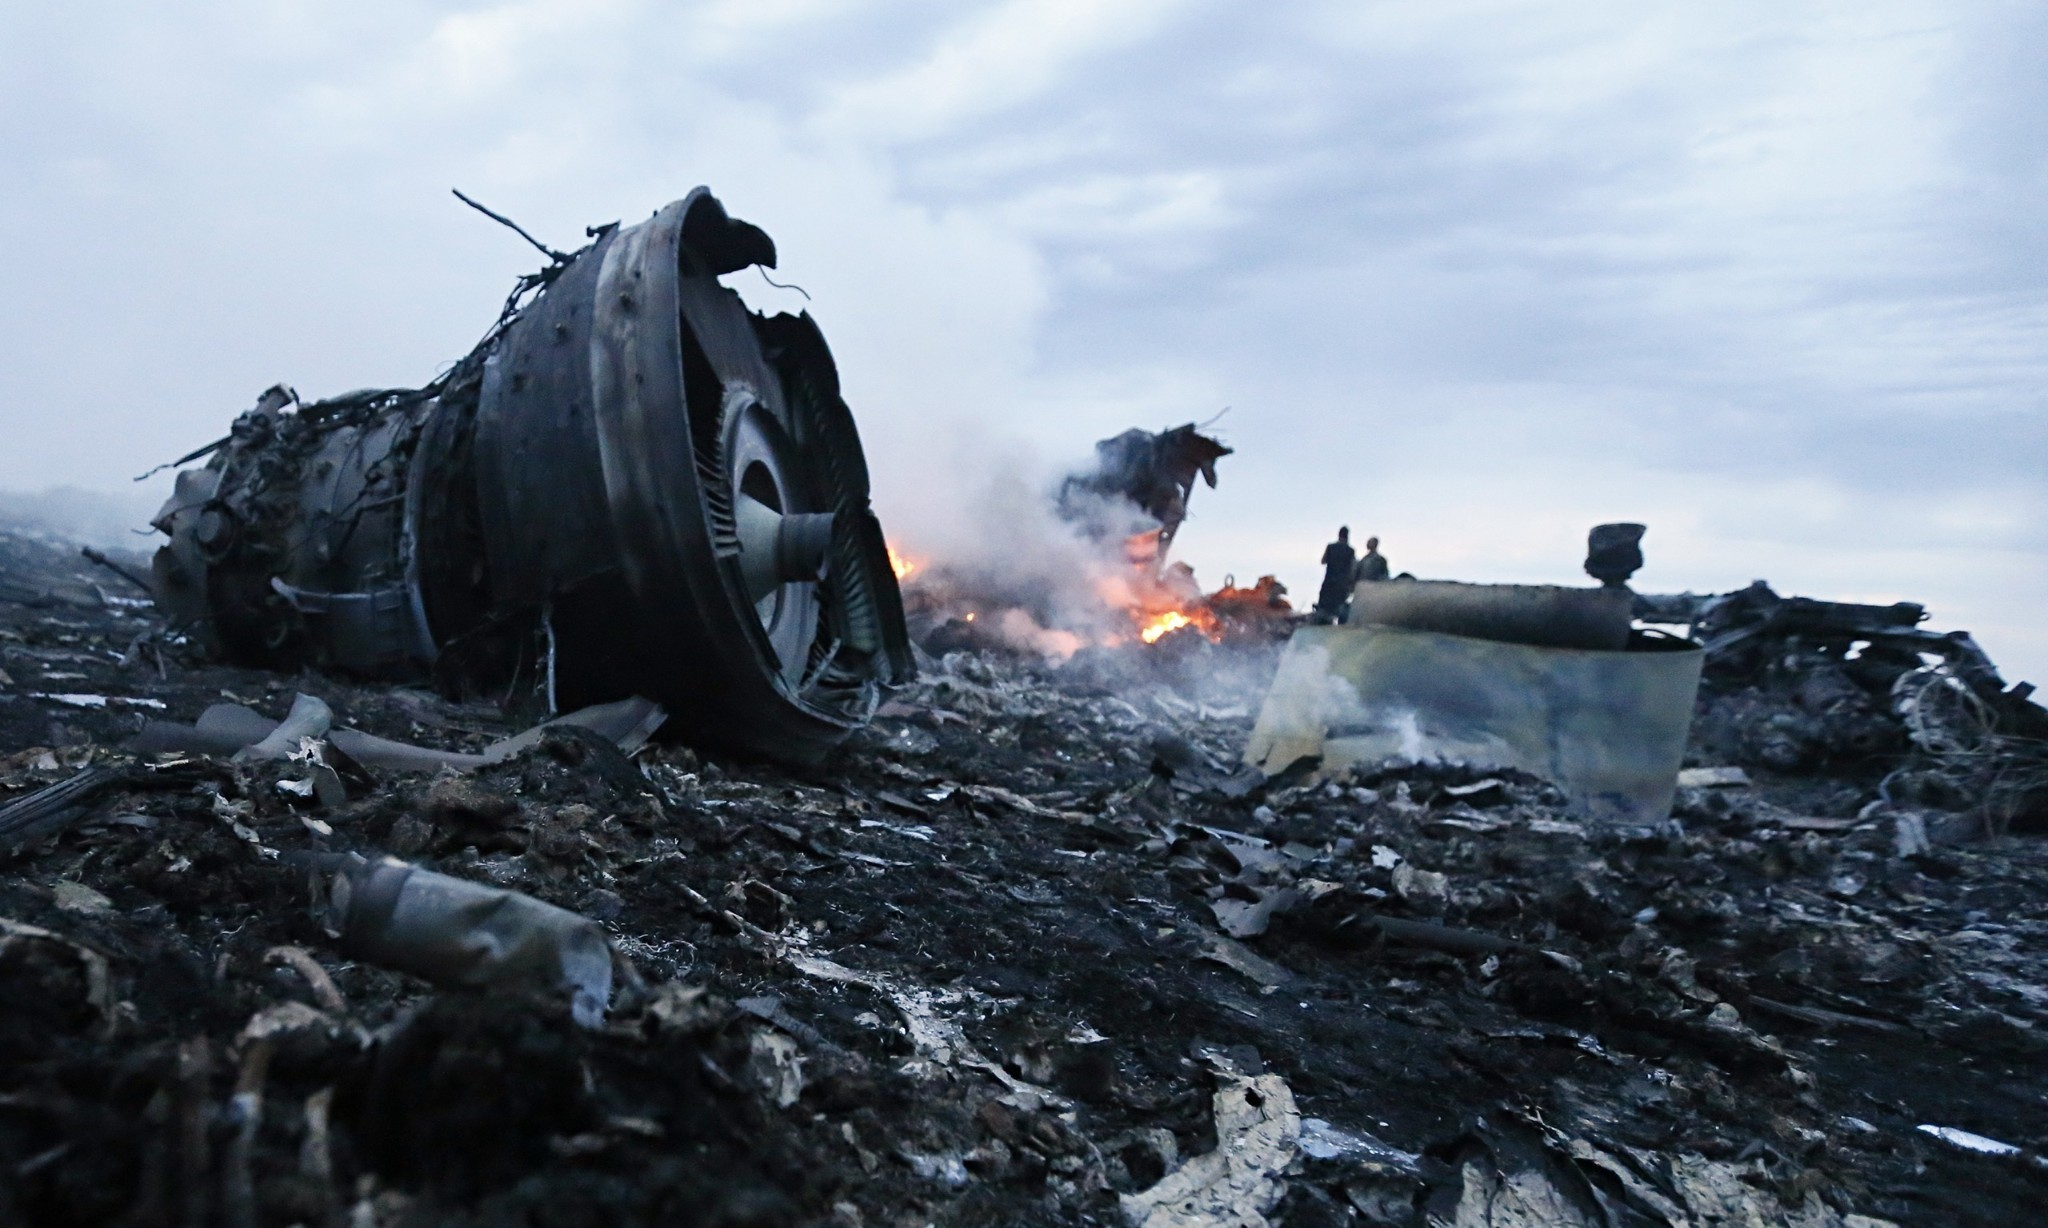 Sifting through the wreckage of MH17, searching for sense amid the horror